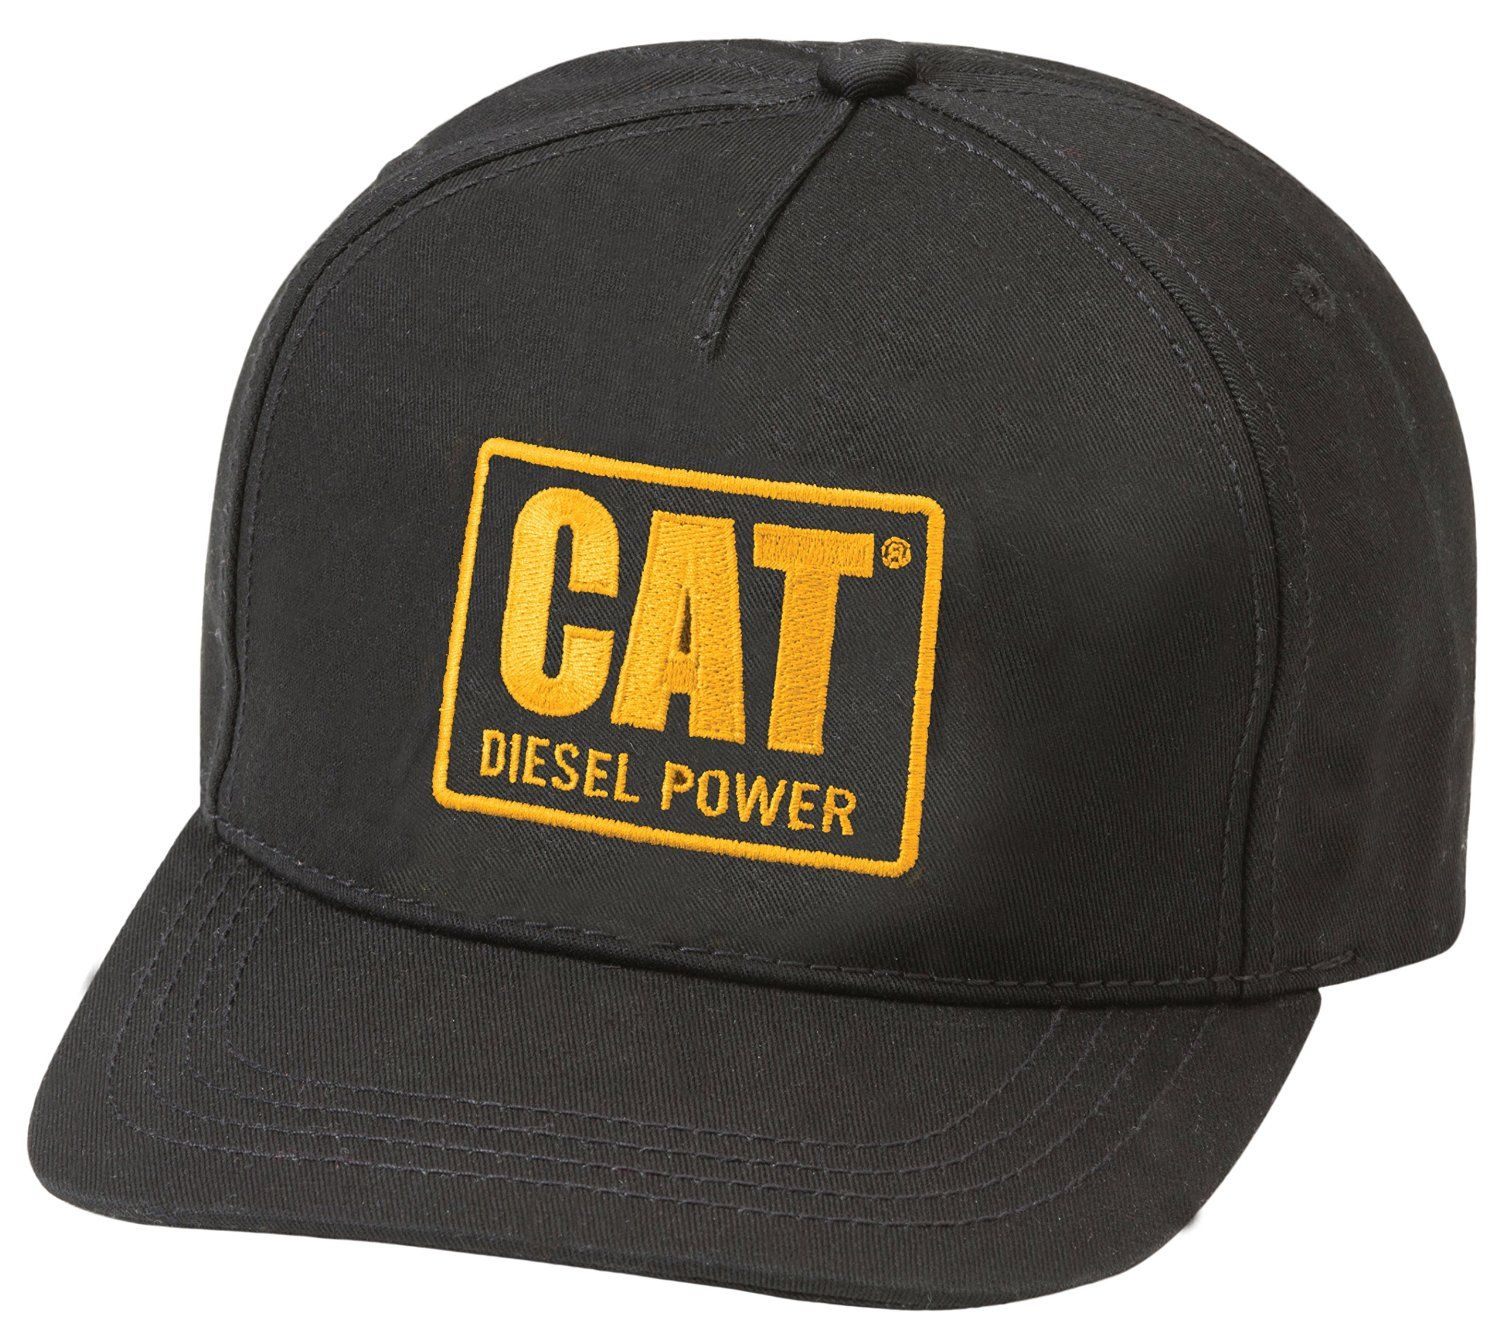 CAT Hats CAT Caps Caterpillar Merchandise